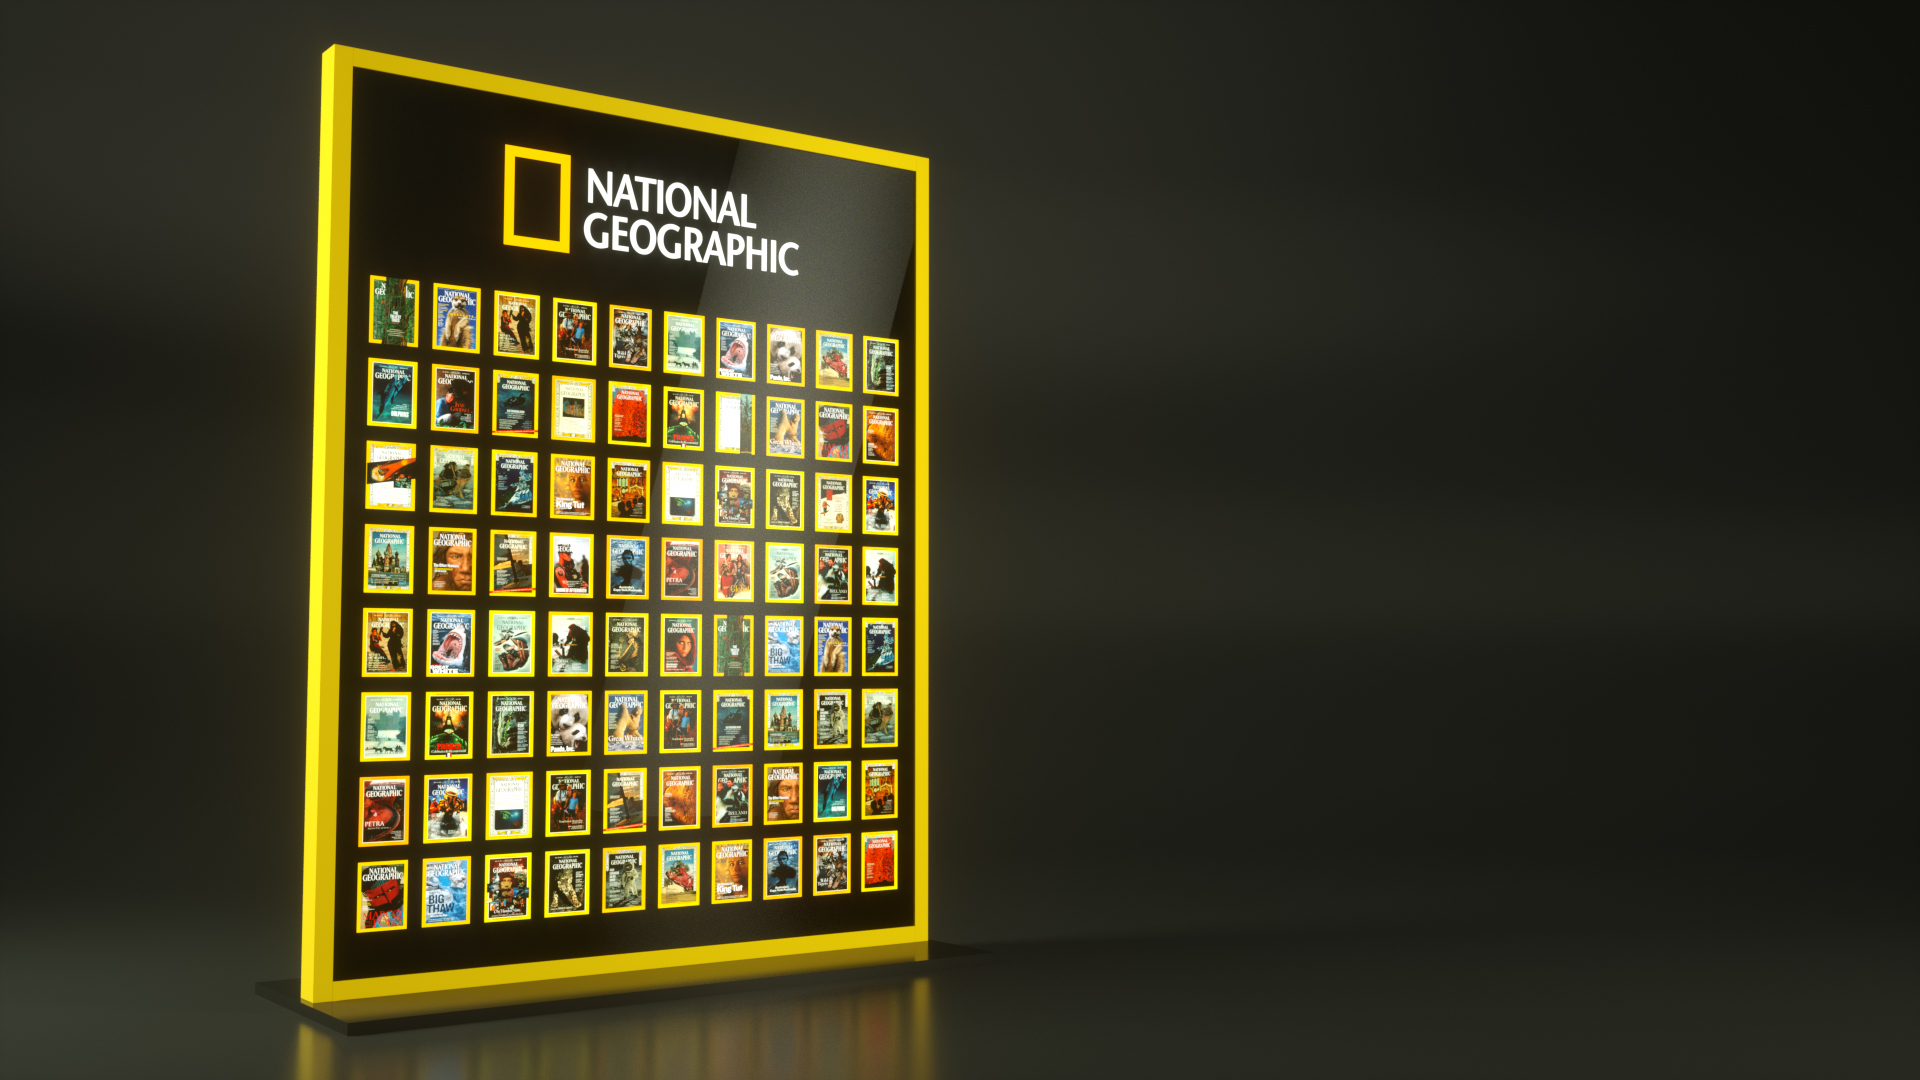 2982 - National Geographic - SHOW Octanorm.jpg